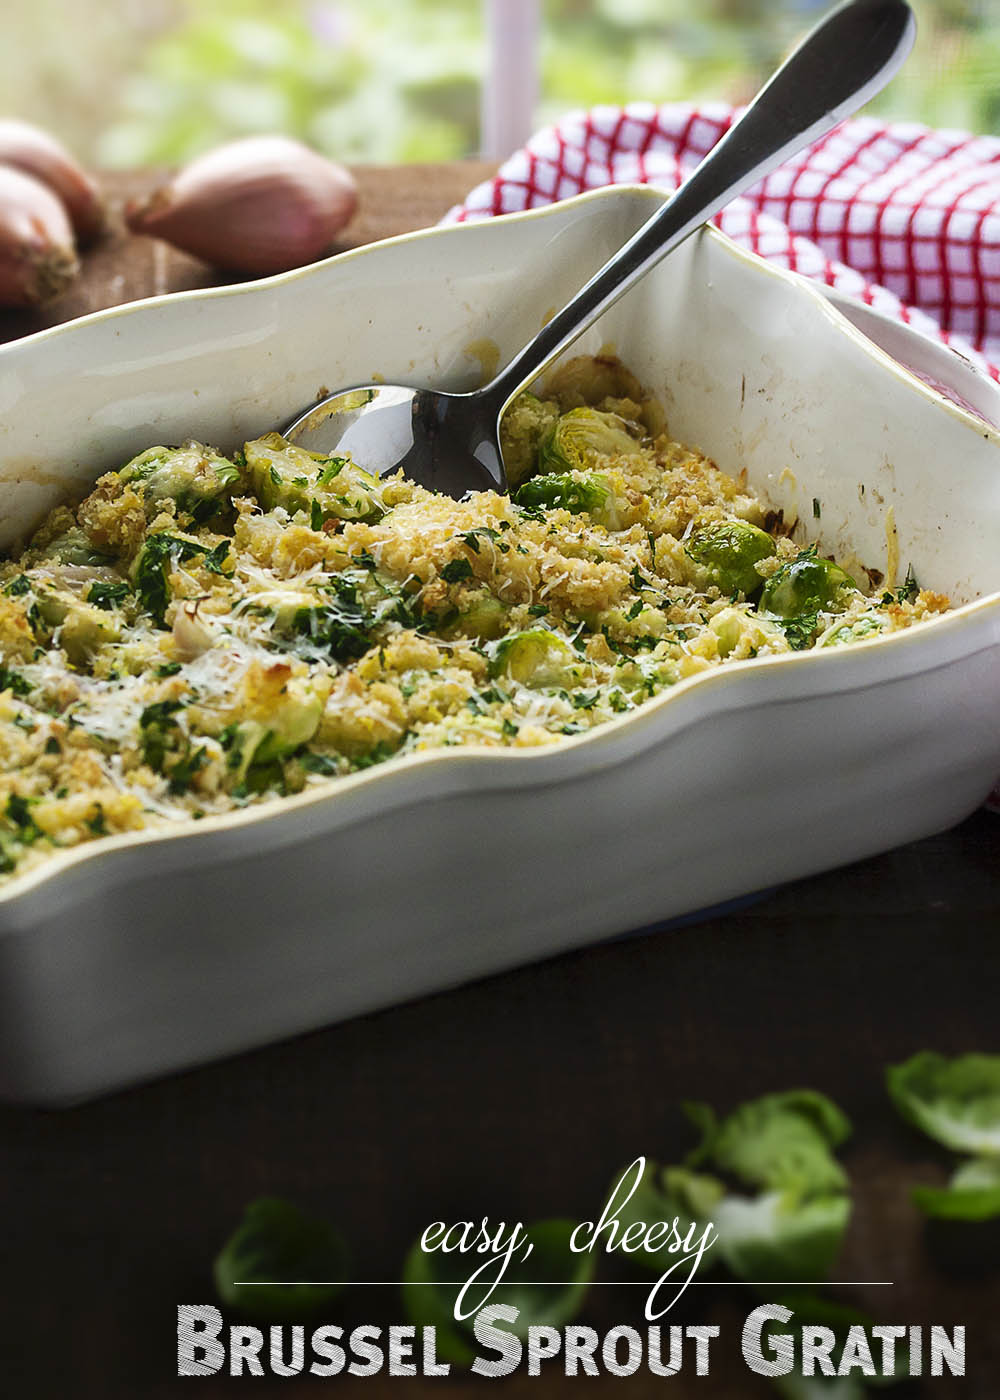 Easy Brussels Sprout and Shallot Gratin - In this brussel sprout gratin, brussel sprouts and shallots are roasted right in the casserole dish and then topped with cheese and breadcrumbs to make for an easy and light gratin. | justalittlebitofbacon.com